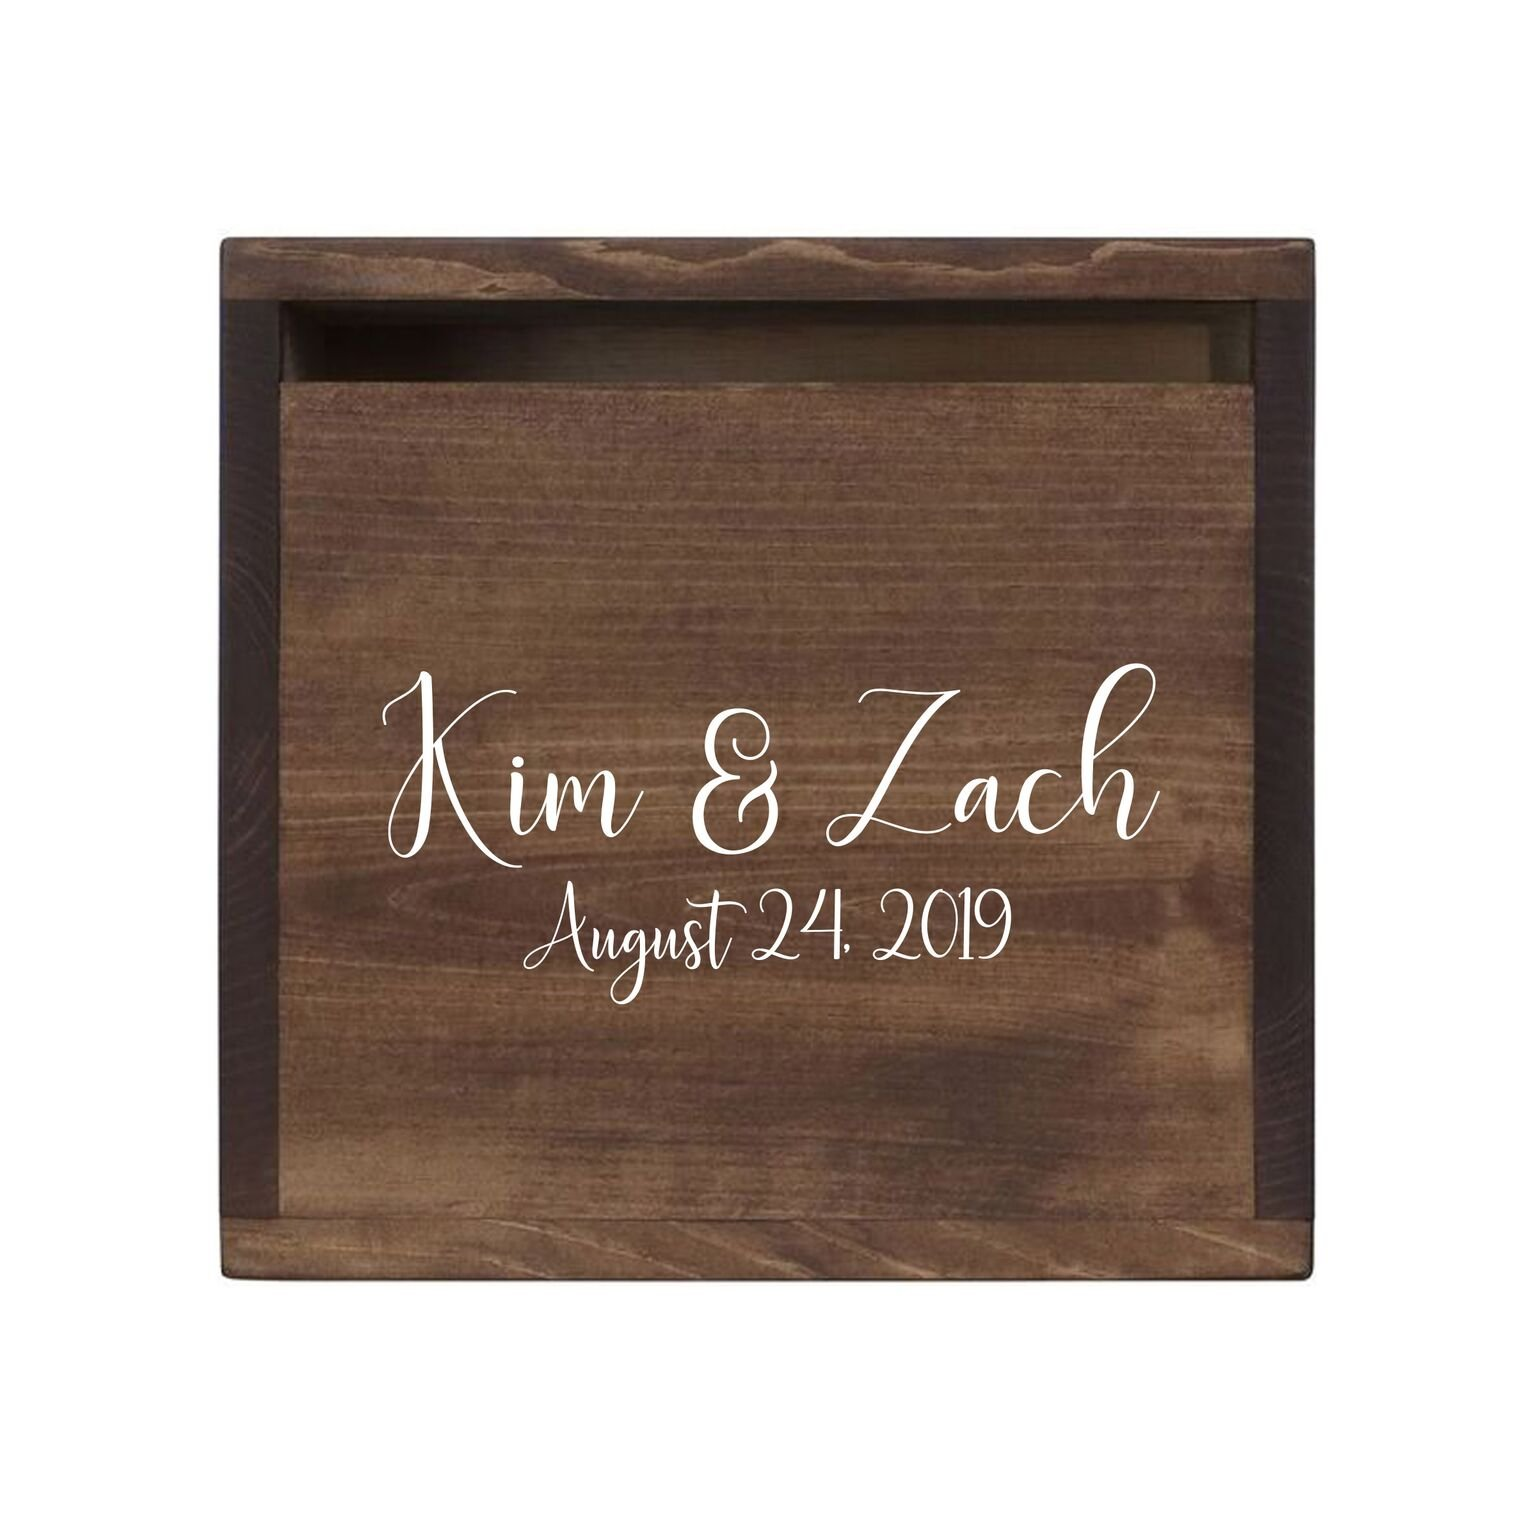 "LifeSong Milestones Personalized First Names Rustic Wooden Wedding Card Box Custom Card Holder with Front Slot for NewlyWeds Couples Reception 13.5"" L x 12"" W x 12.5"" T (Walnut)"